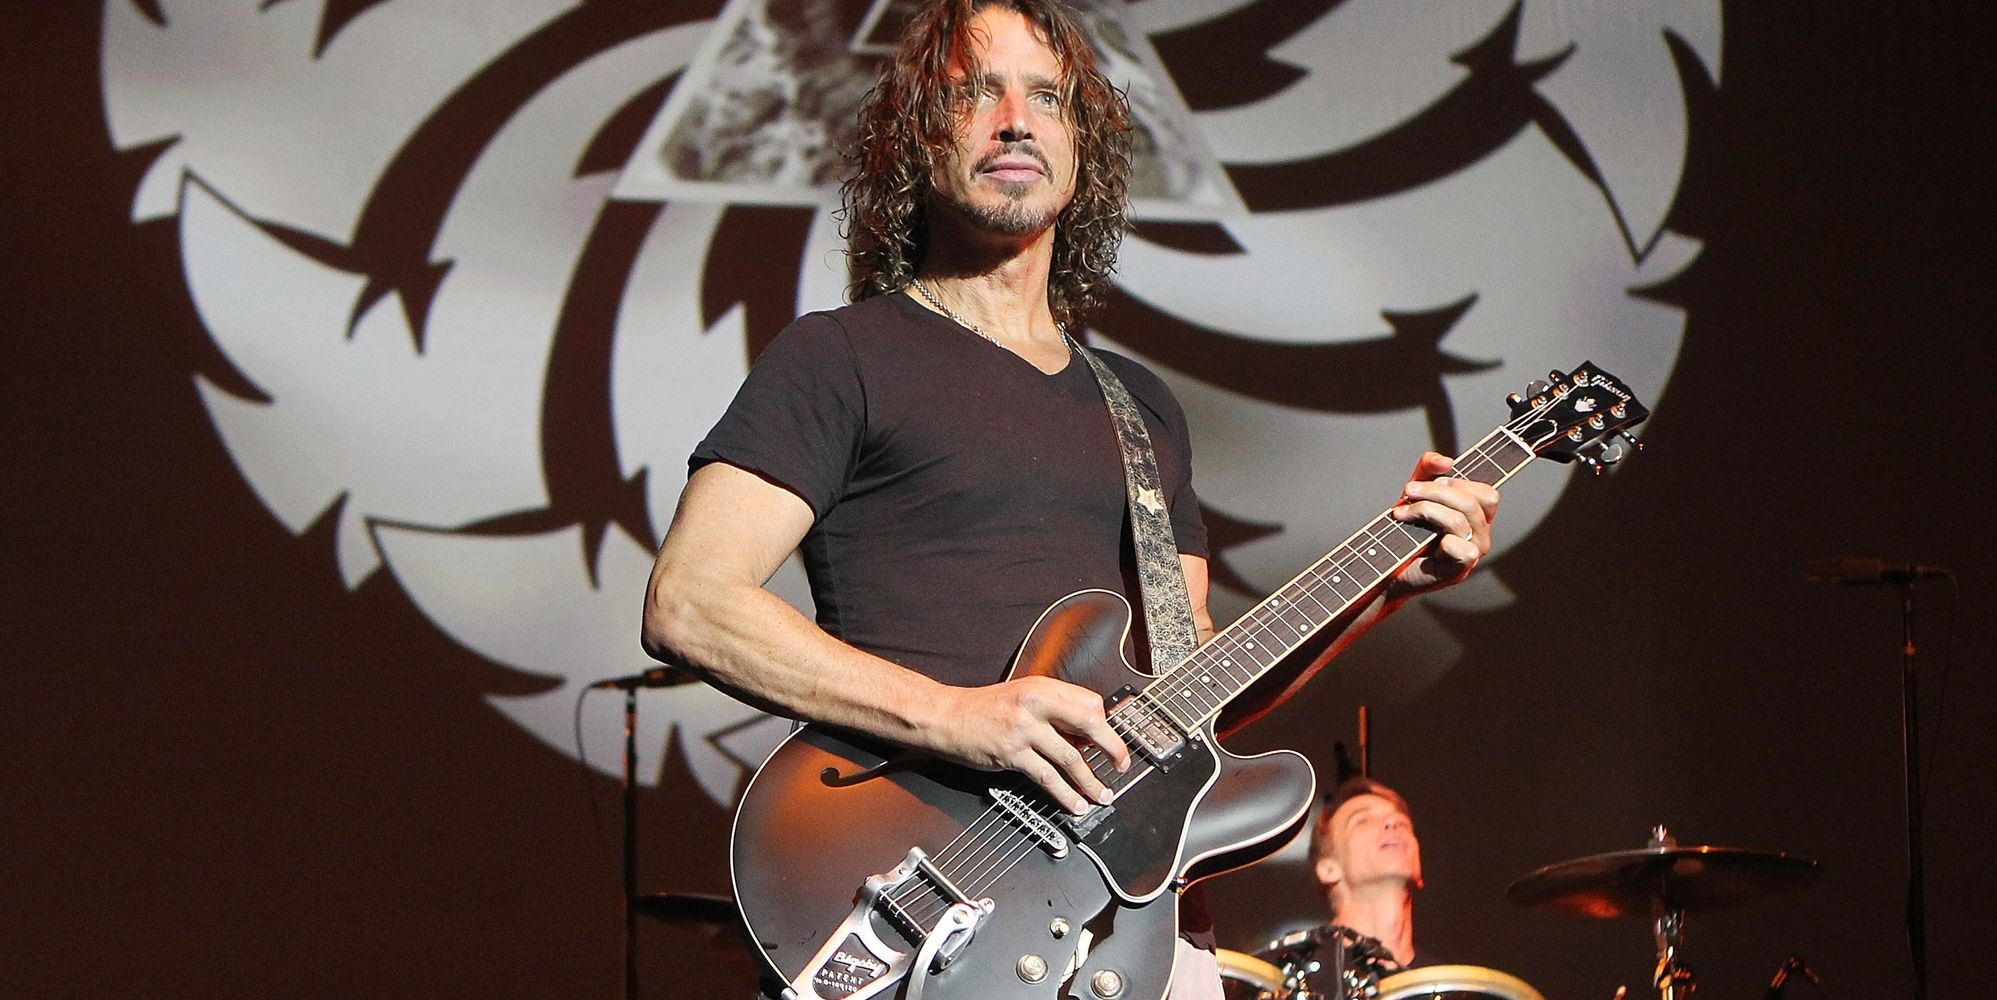 Soundgarden's Chris Cornell Dies, Aged 52